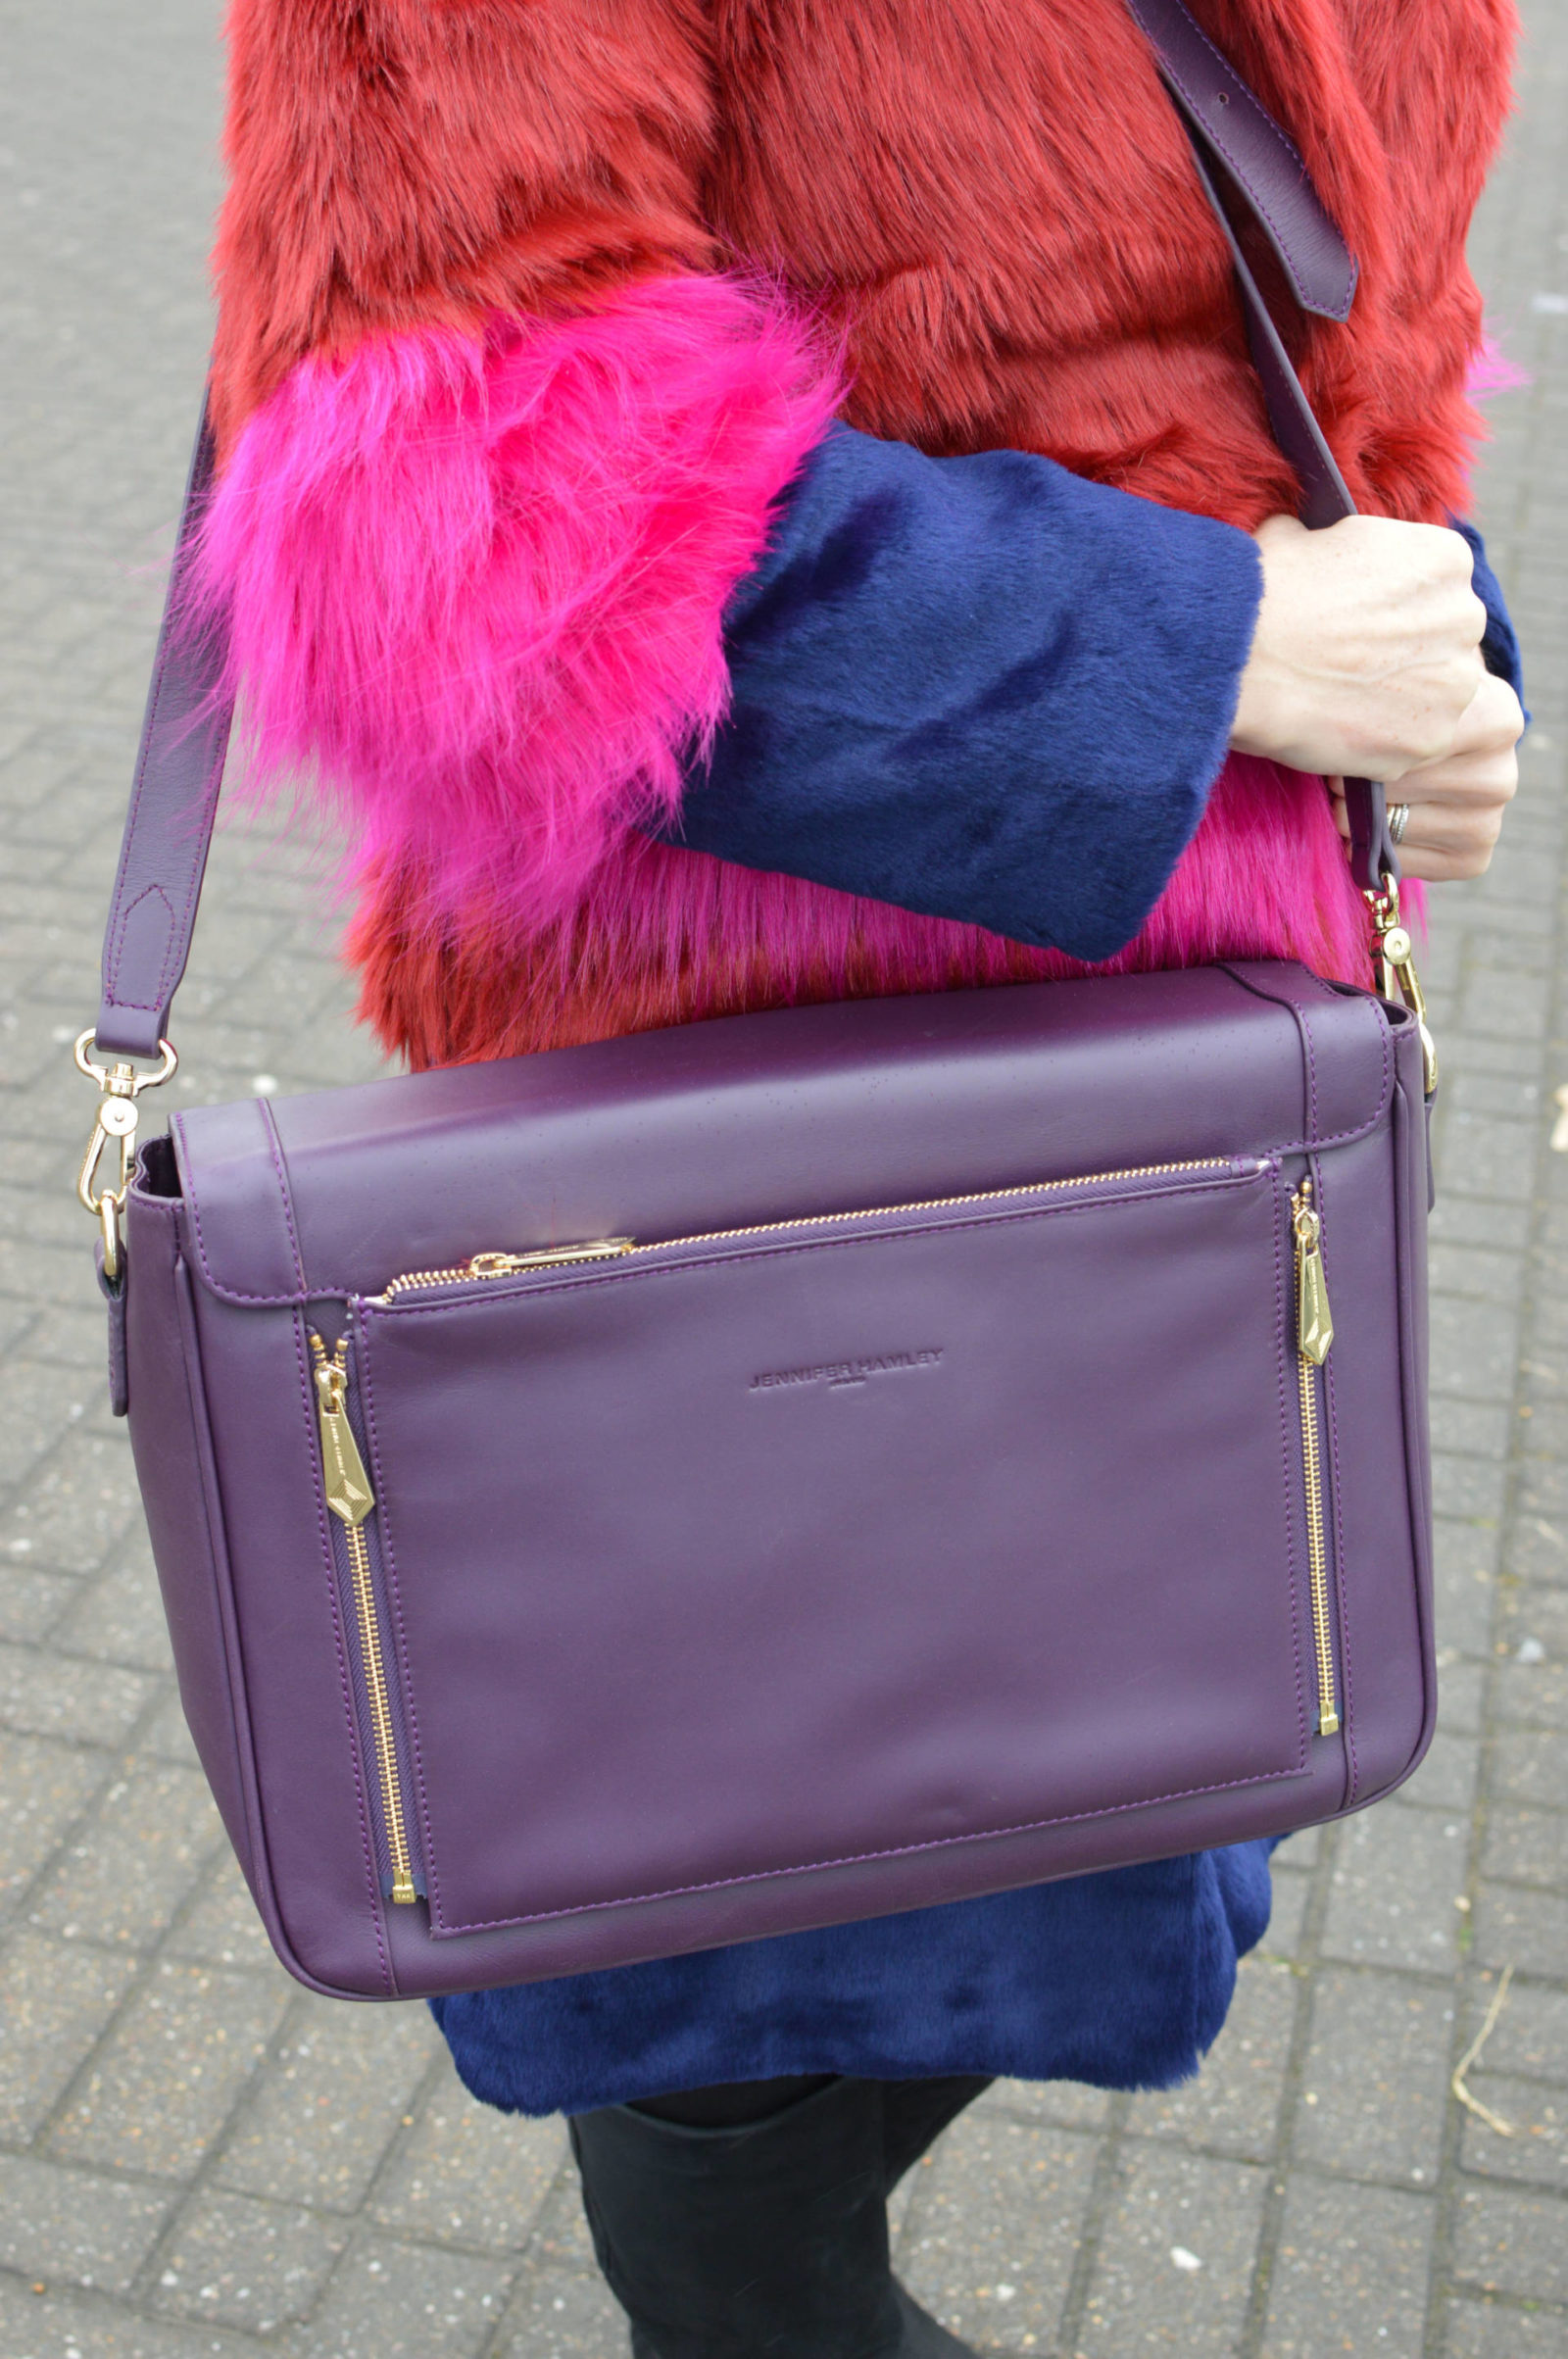 Valentine's lunch date outfits, Asos faux fur coat, Jennifer Hamley Model KT aubergine laptop bag